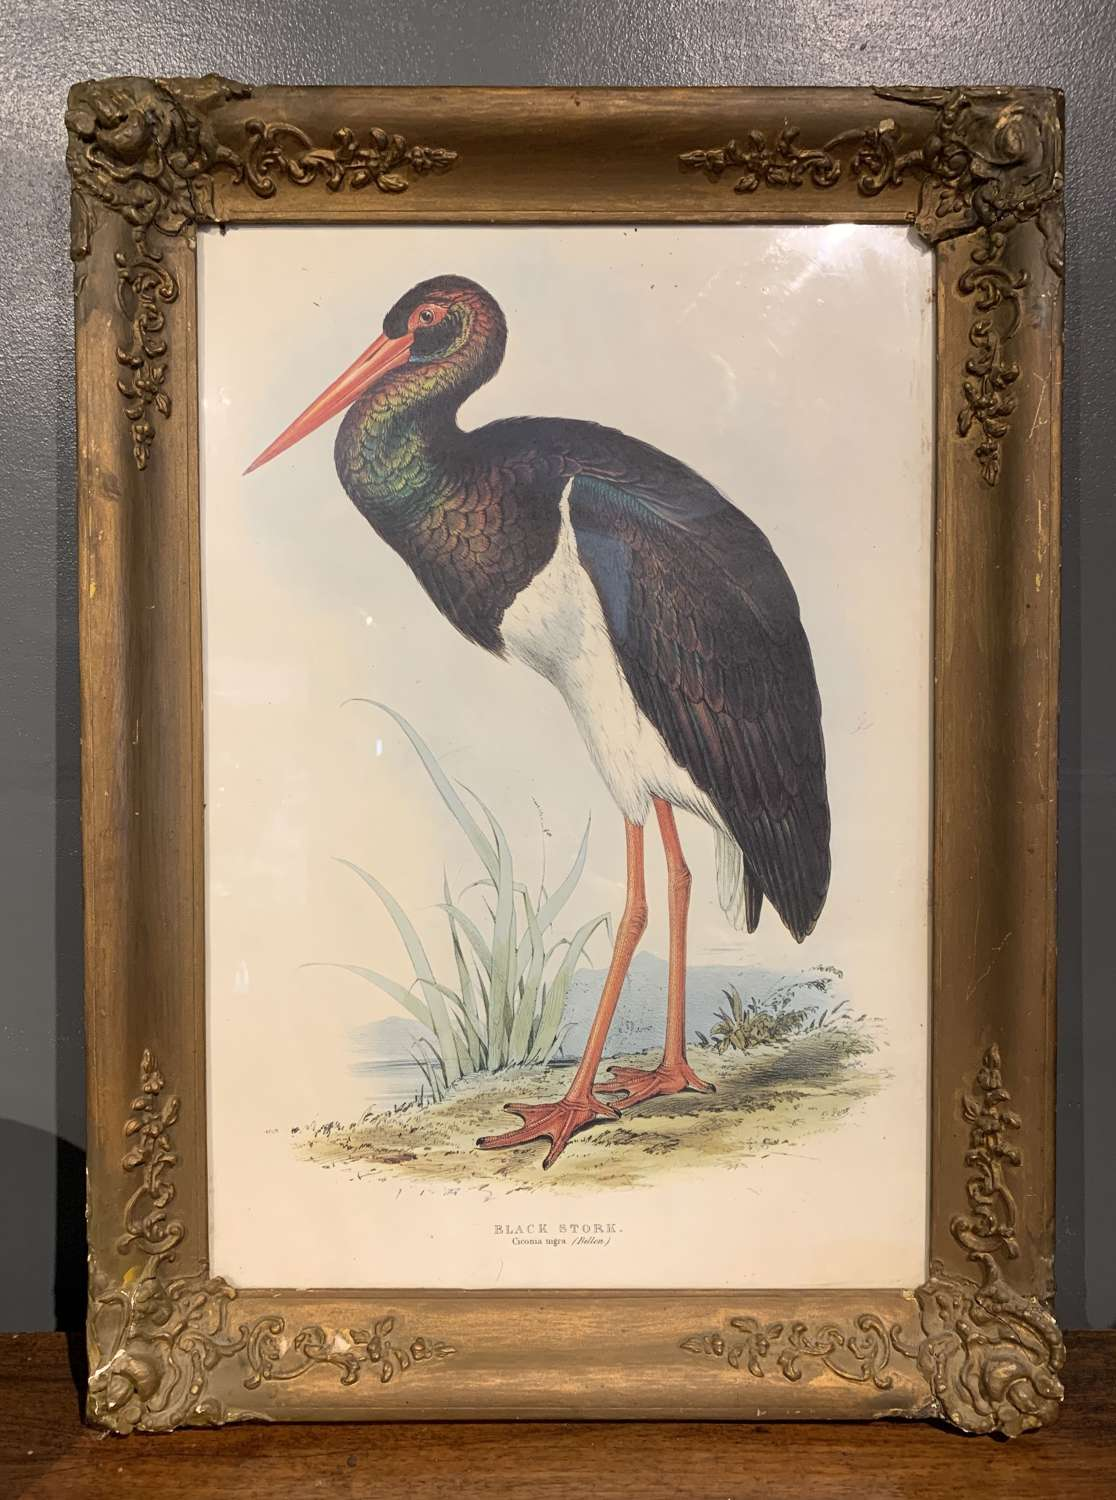 Edward Lear Lithograph 'Black Stork' from John Gould's Birds of Europe